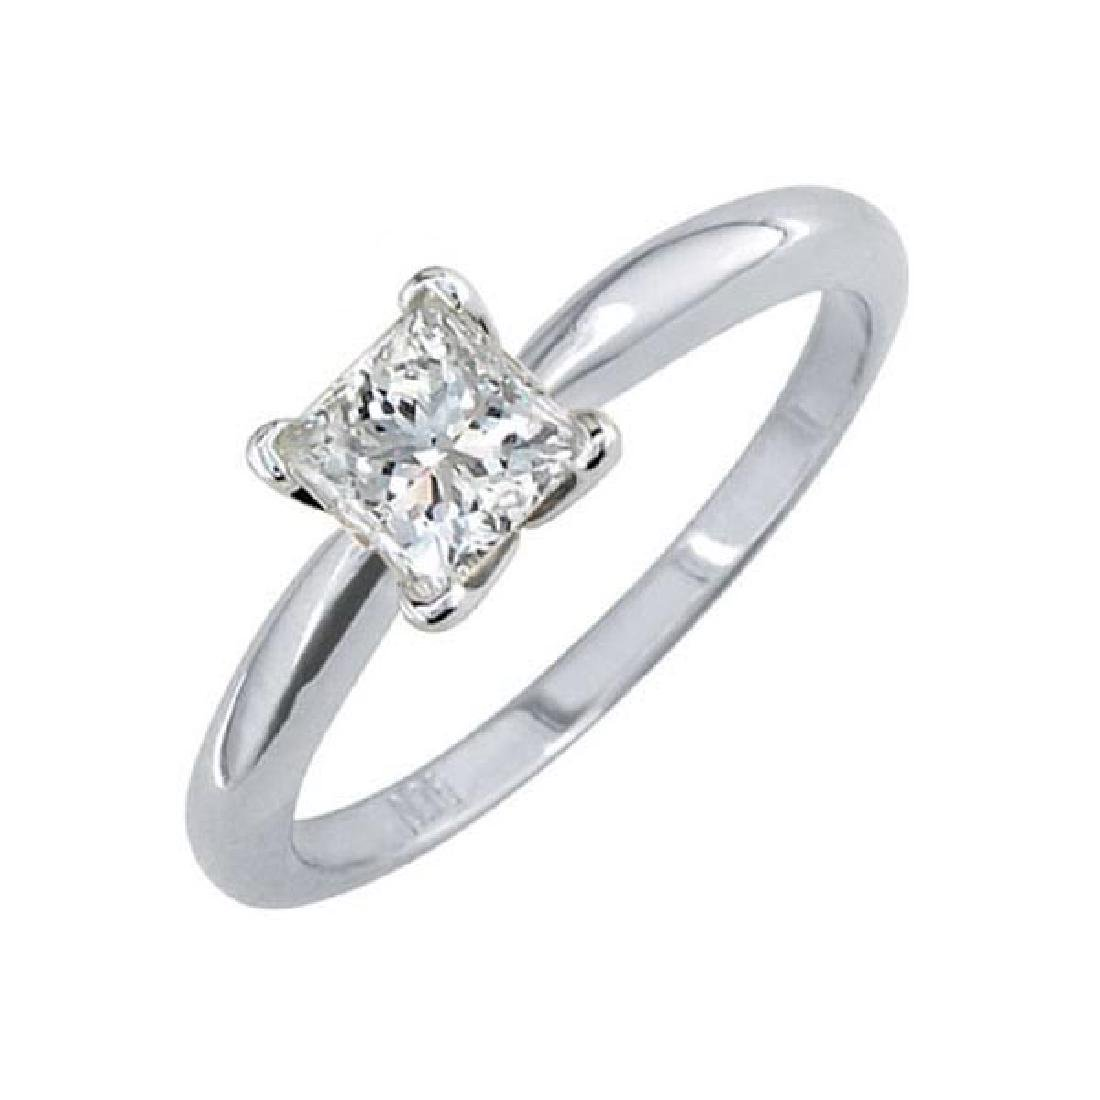 Certified 0.96 CTW Princess Diamond Solitaire 14k Ring